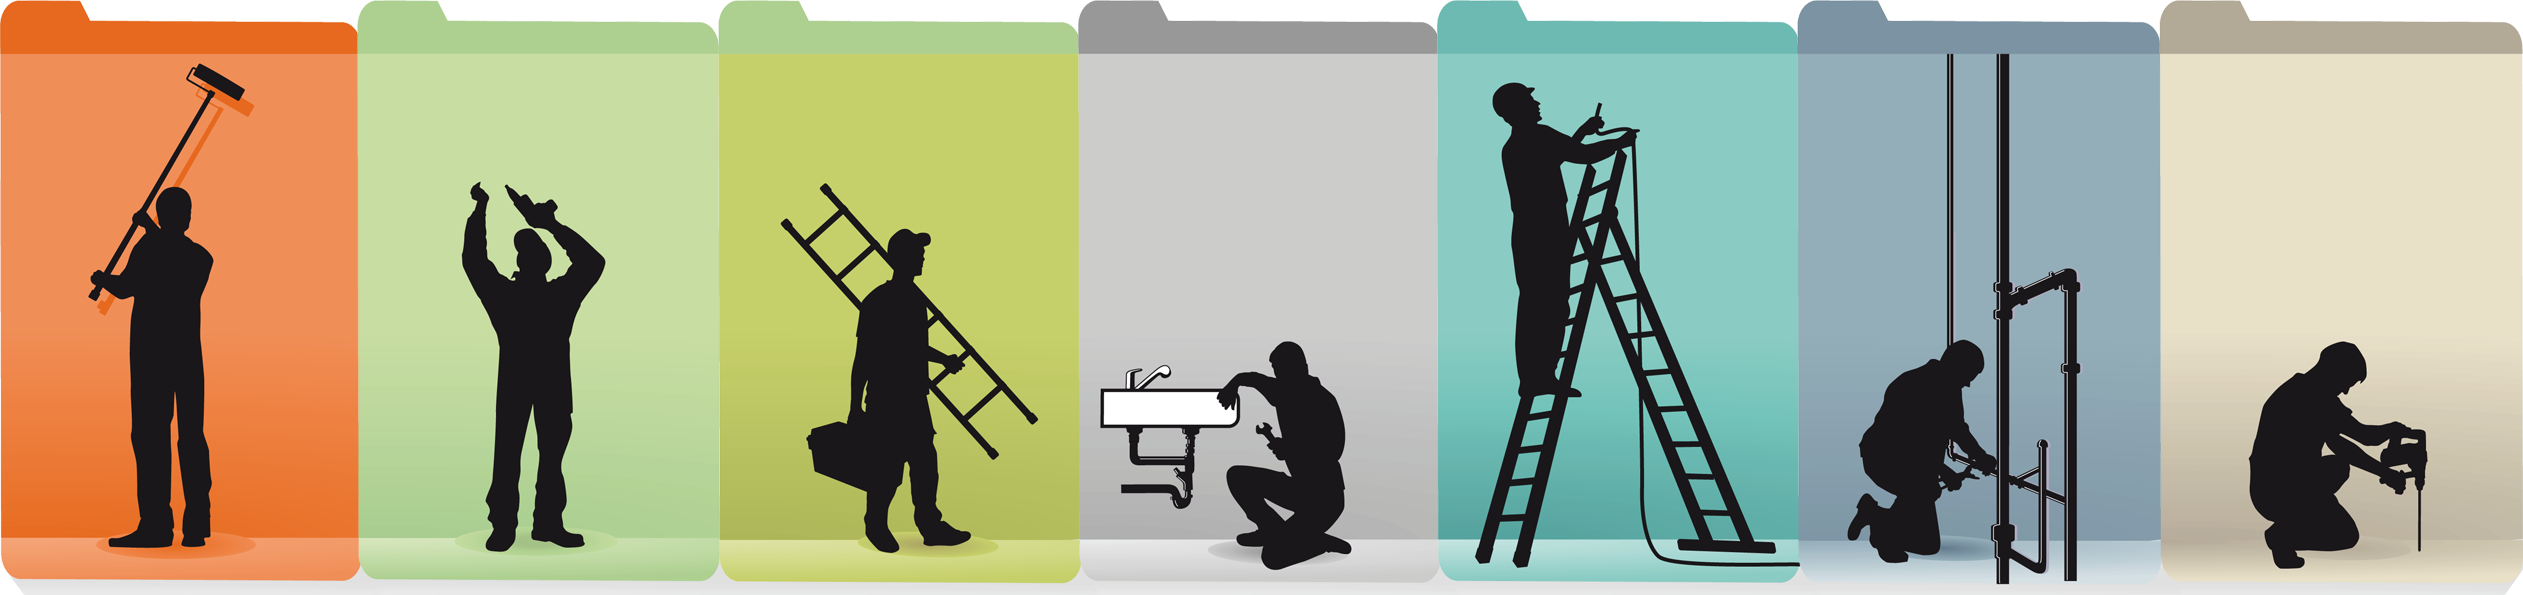 Graphics of professionals doing construction work